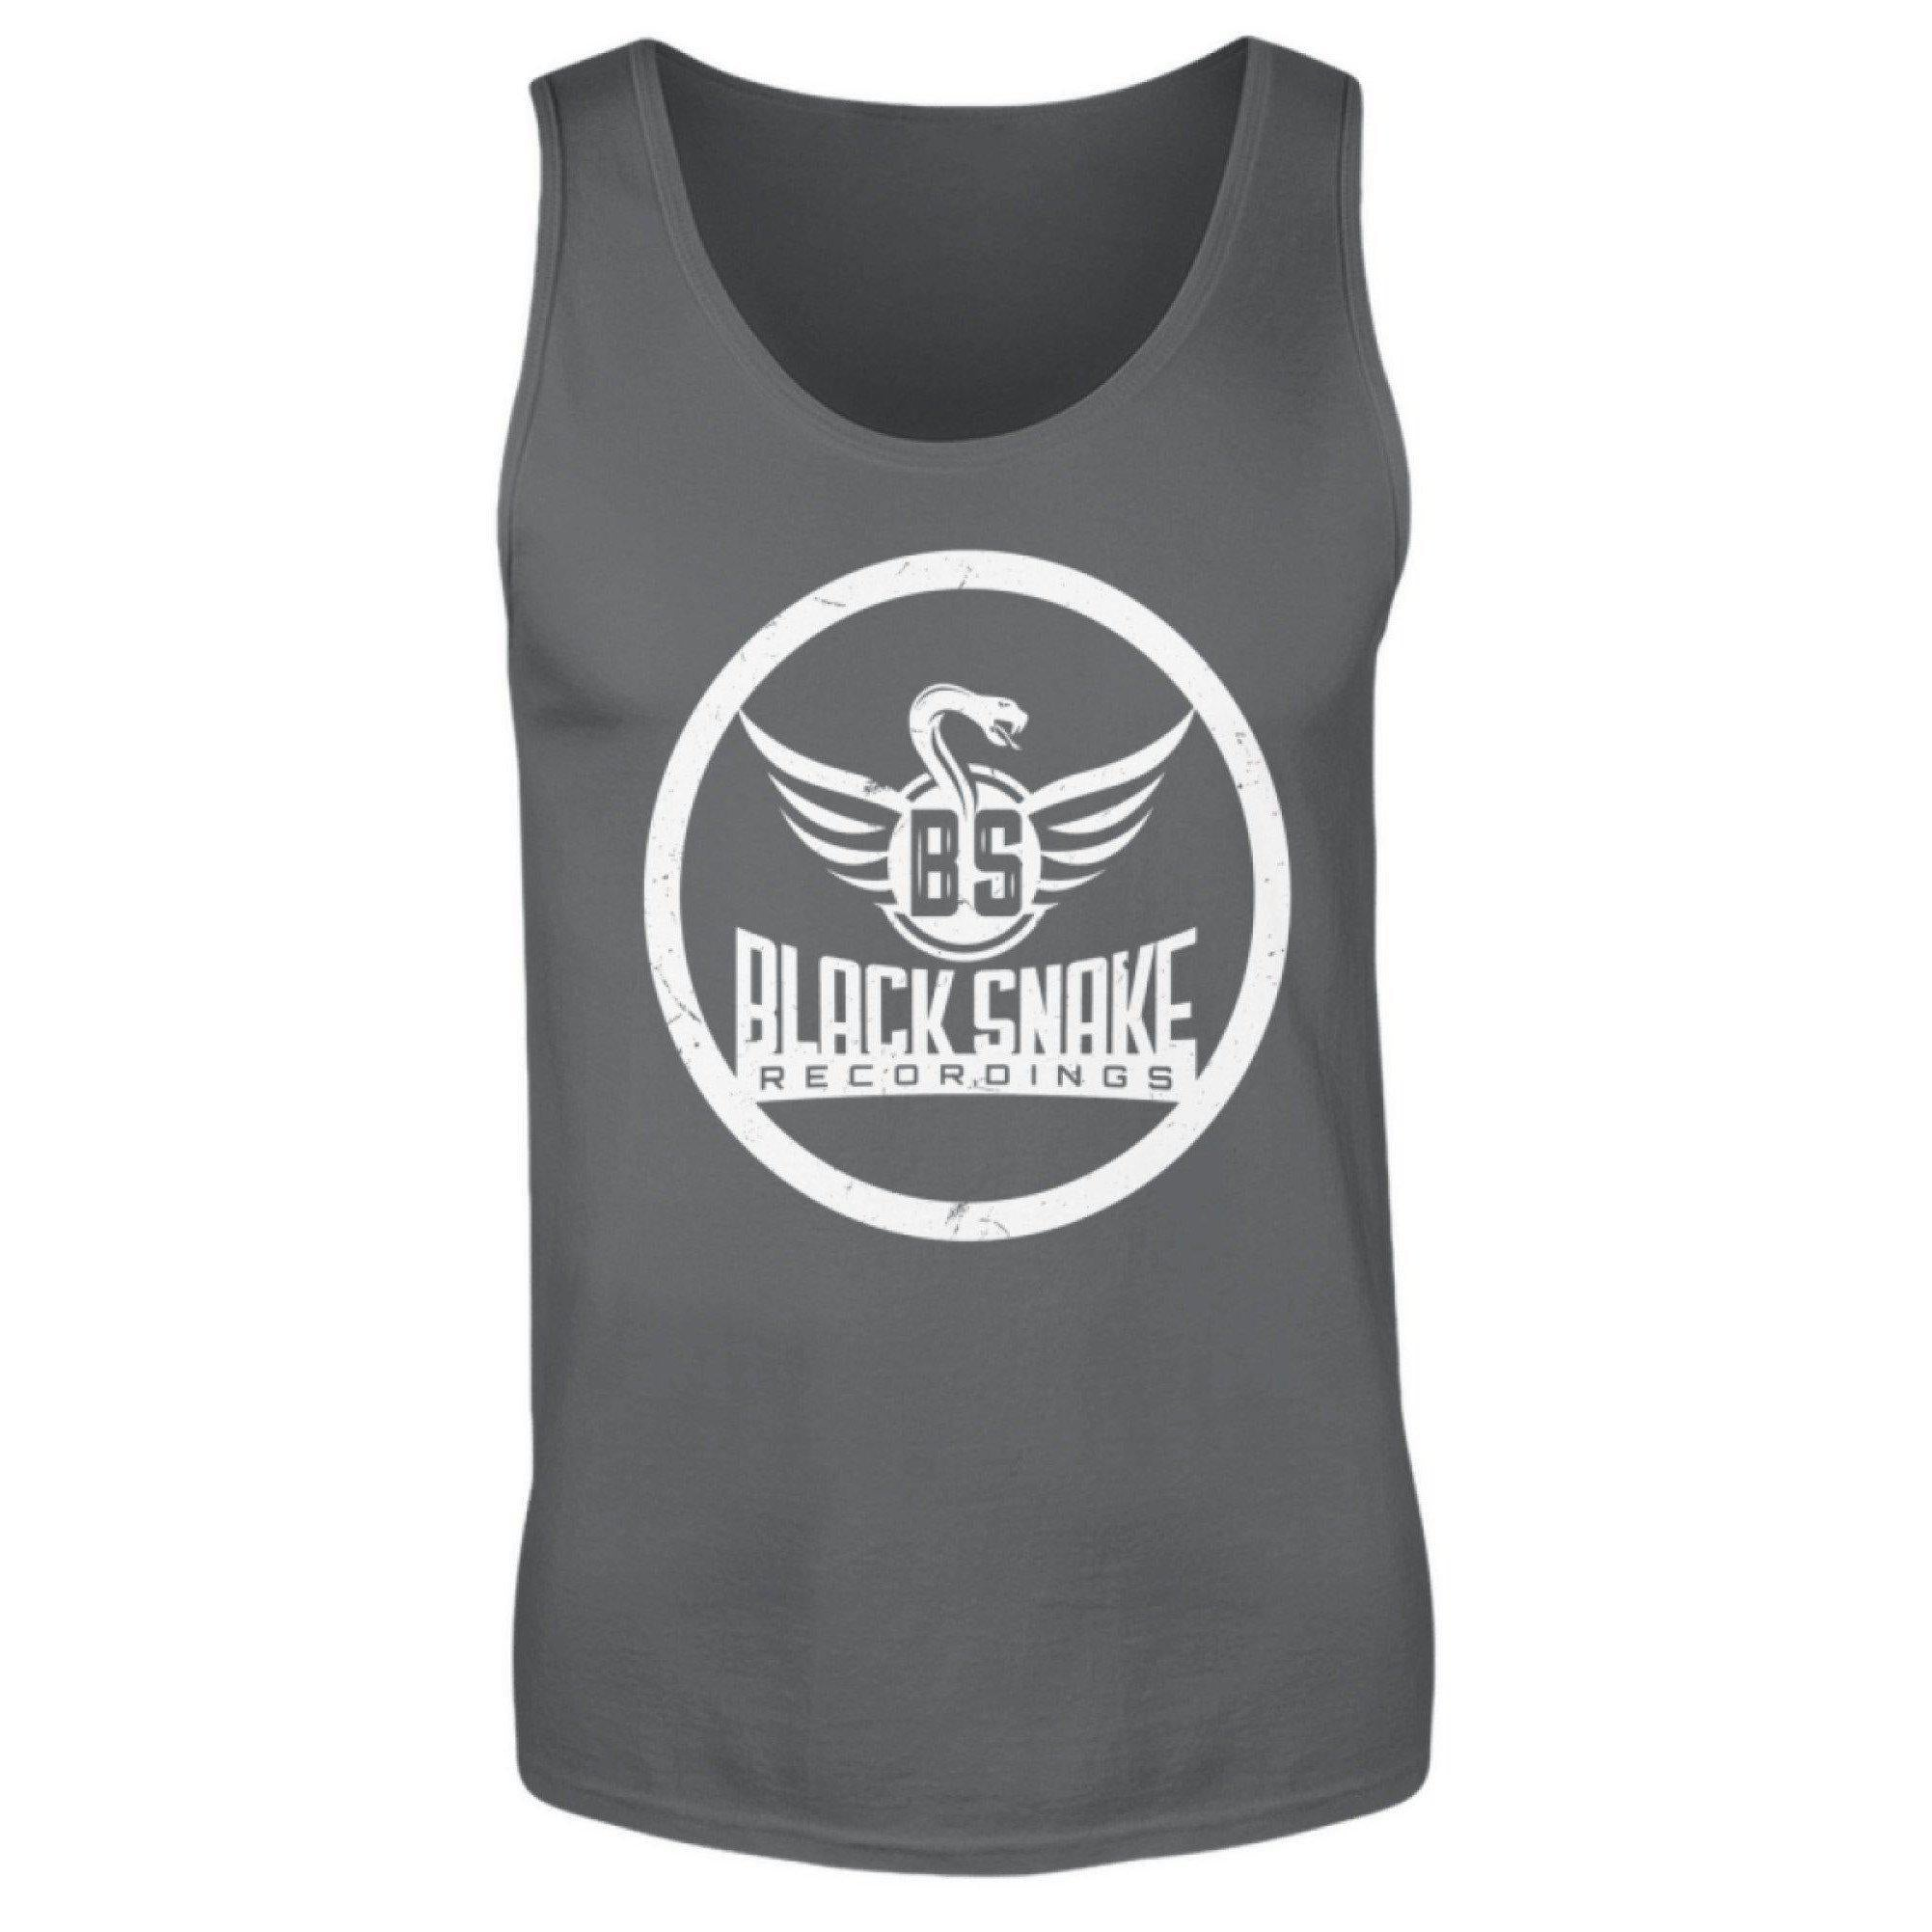 Black Snake Recordings Collection - men's tank top men's tank top gray black / S - Rave On!® the club & techno scene shop for cool young fashion streetwear style & fashion outfits + sexy festival 420 stuff